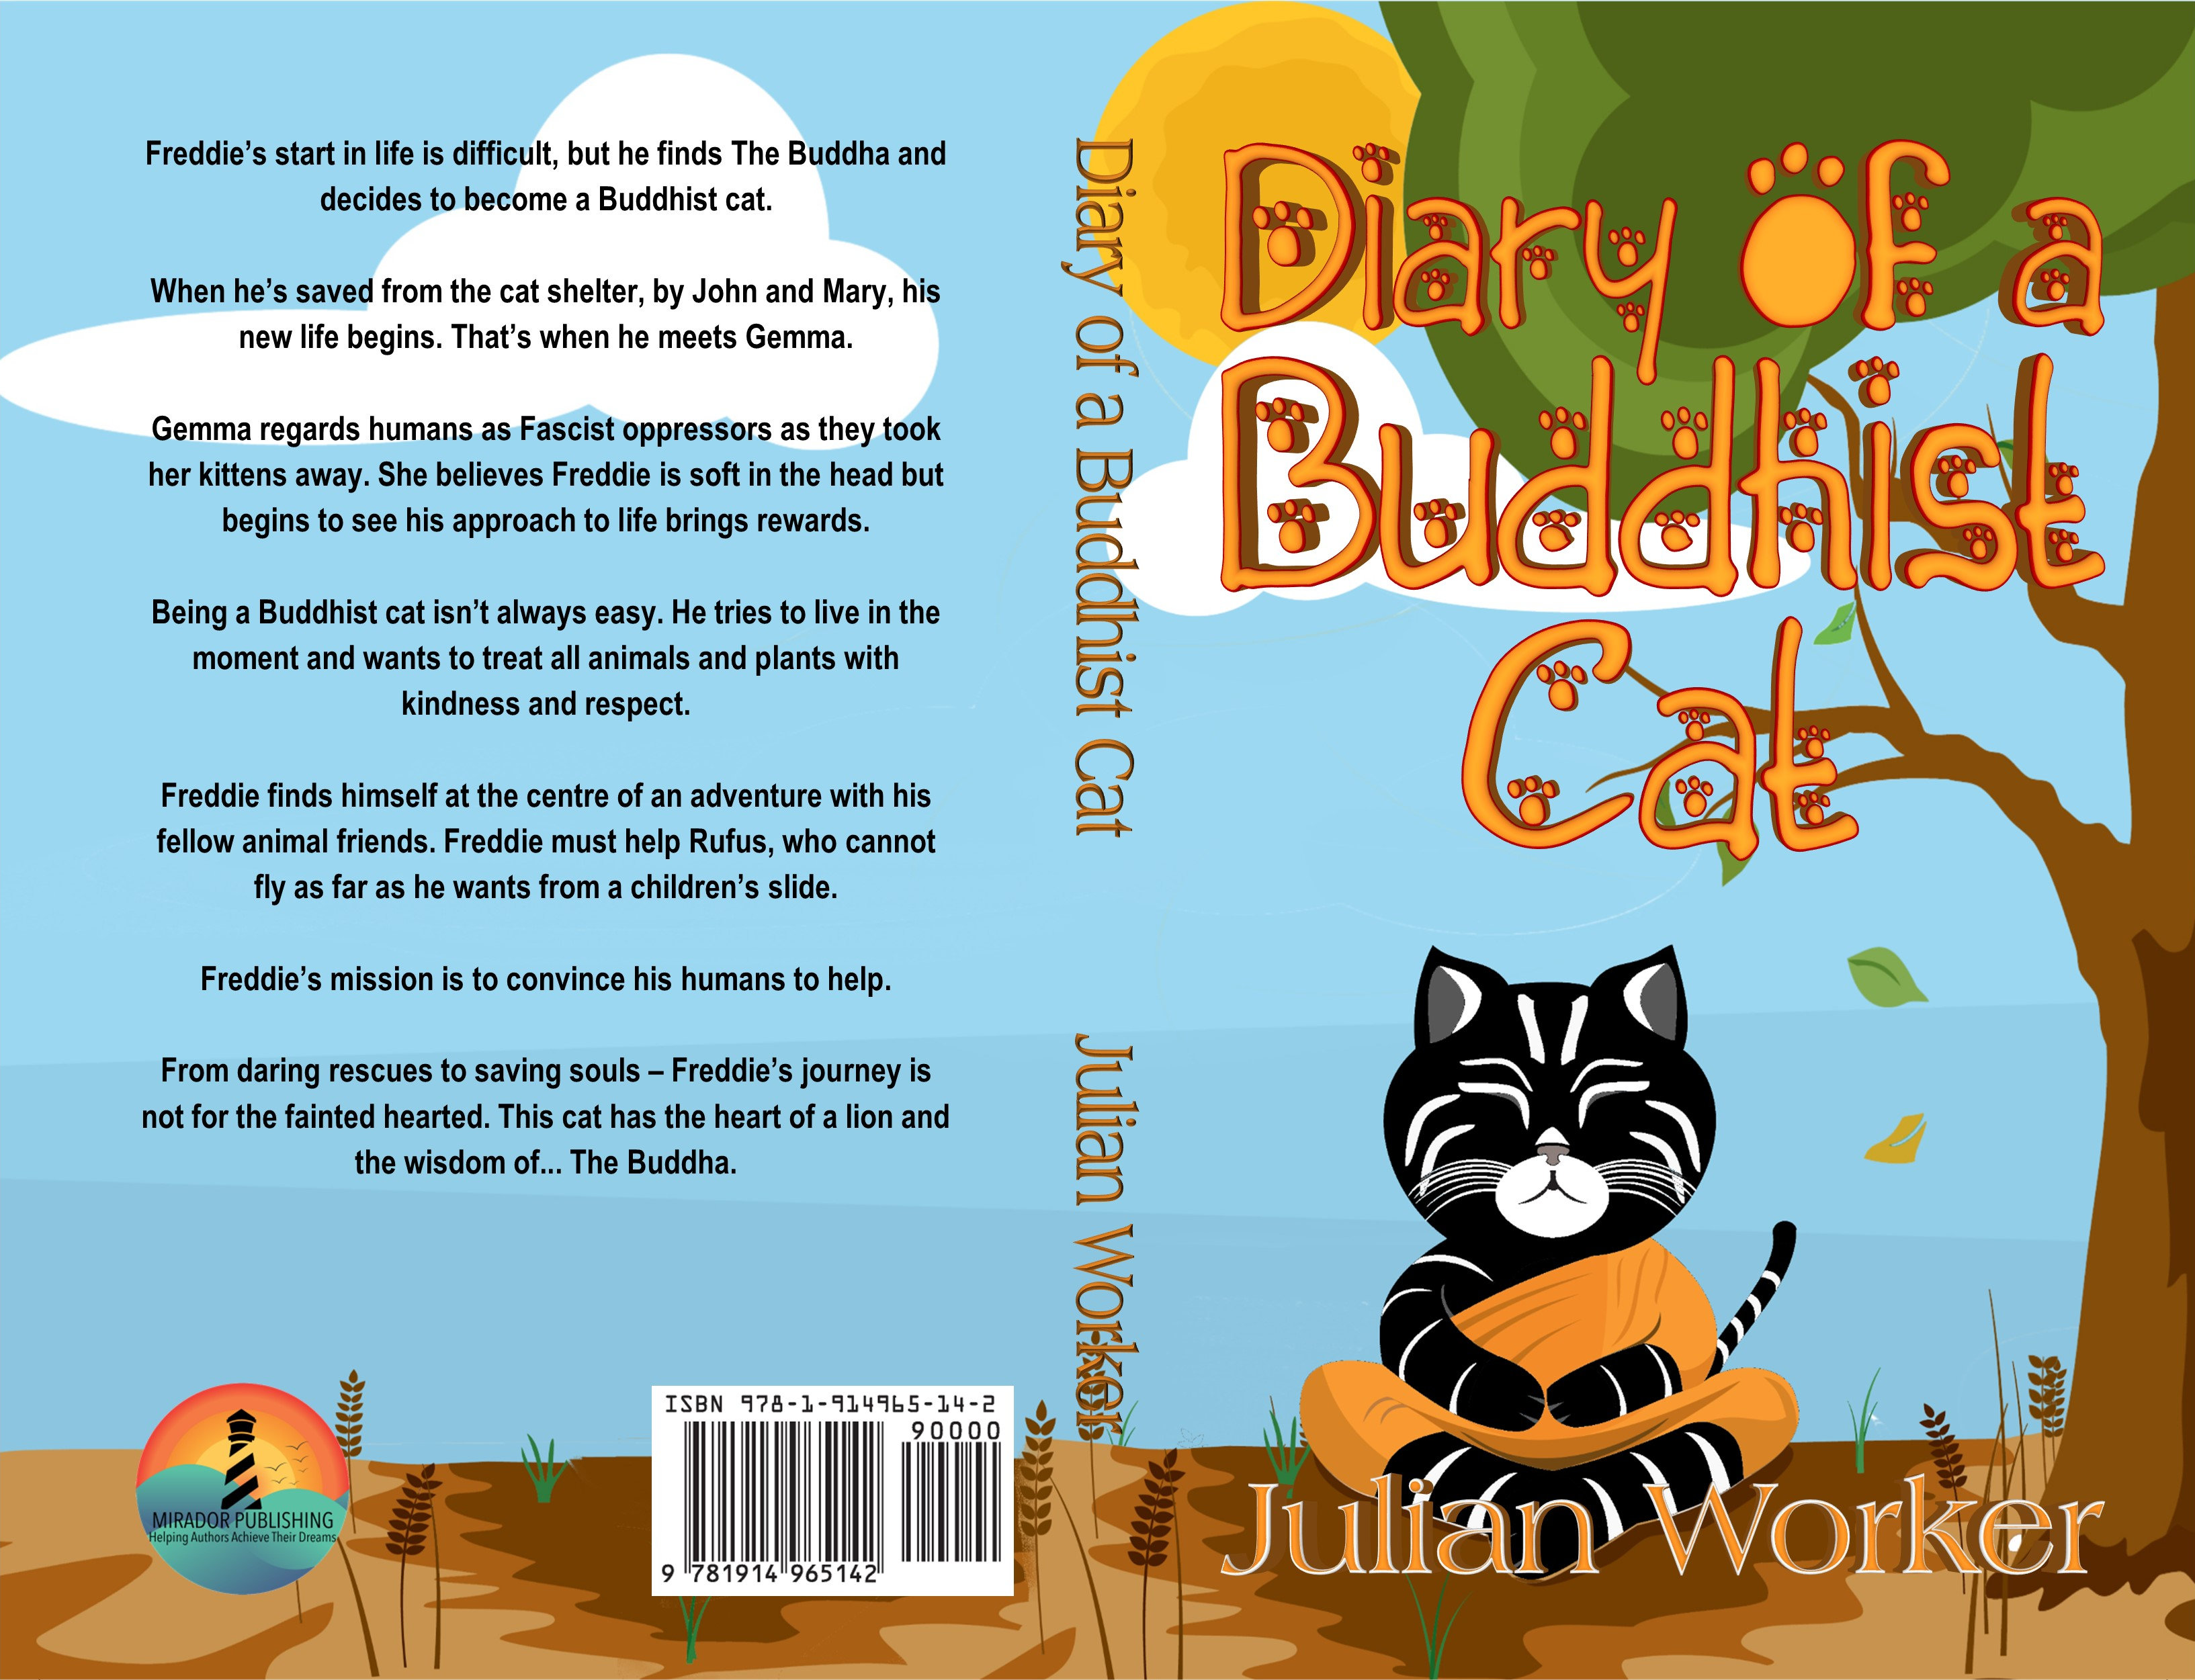 The Diary of a Buddhist Cat